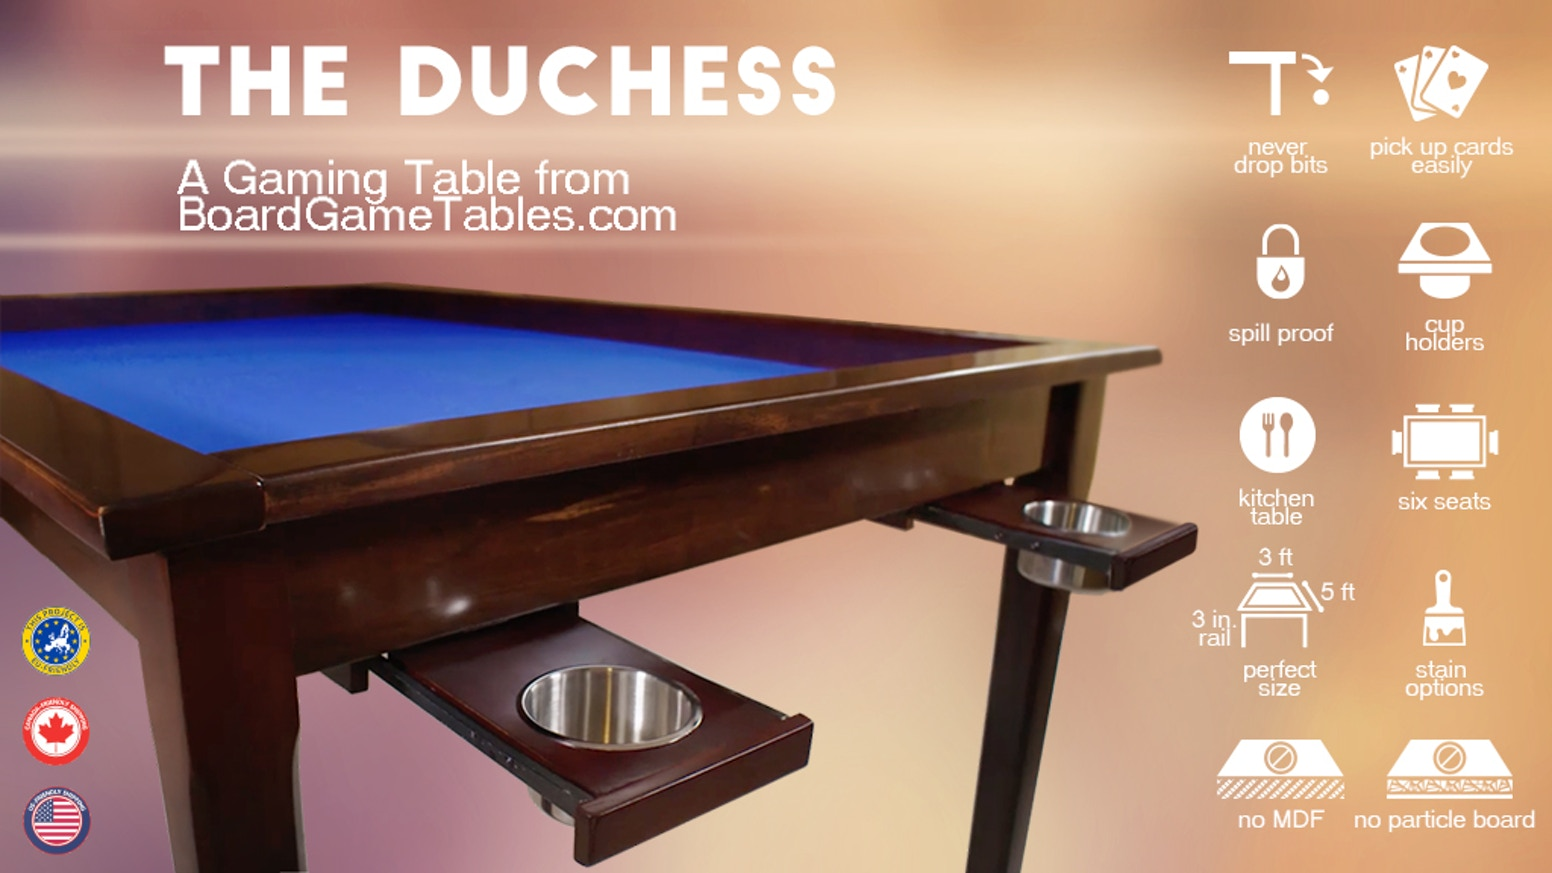 A table built for board gaming, at a price never seen before.